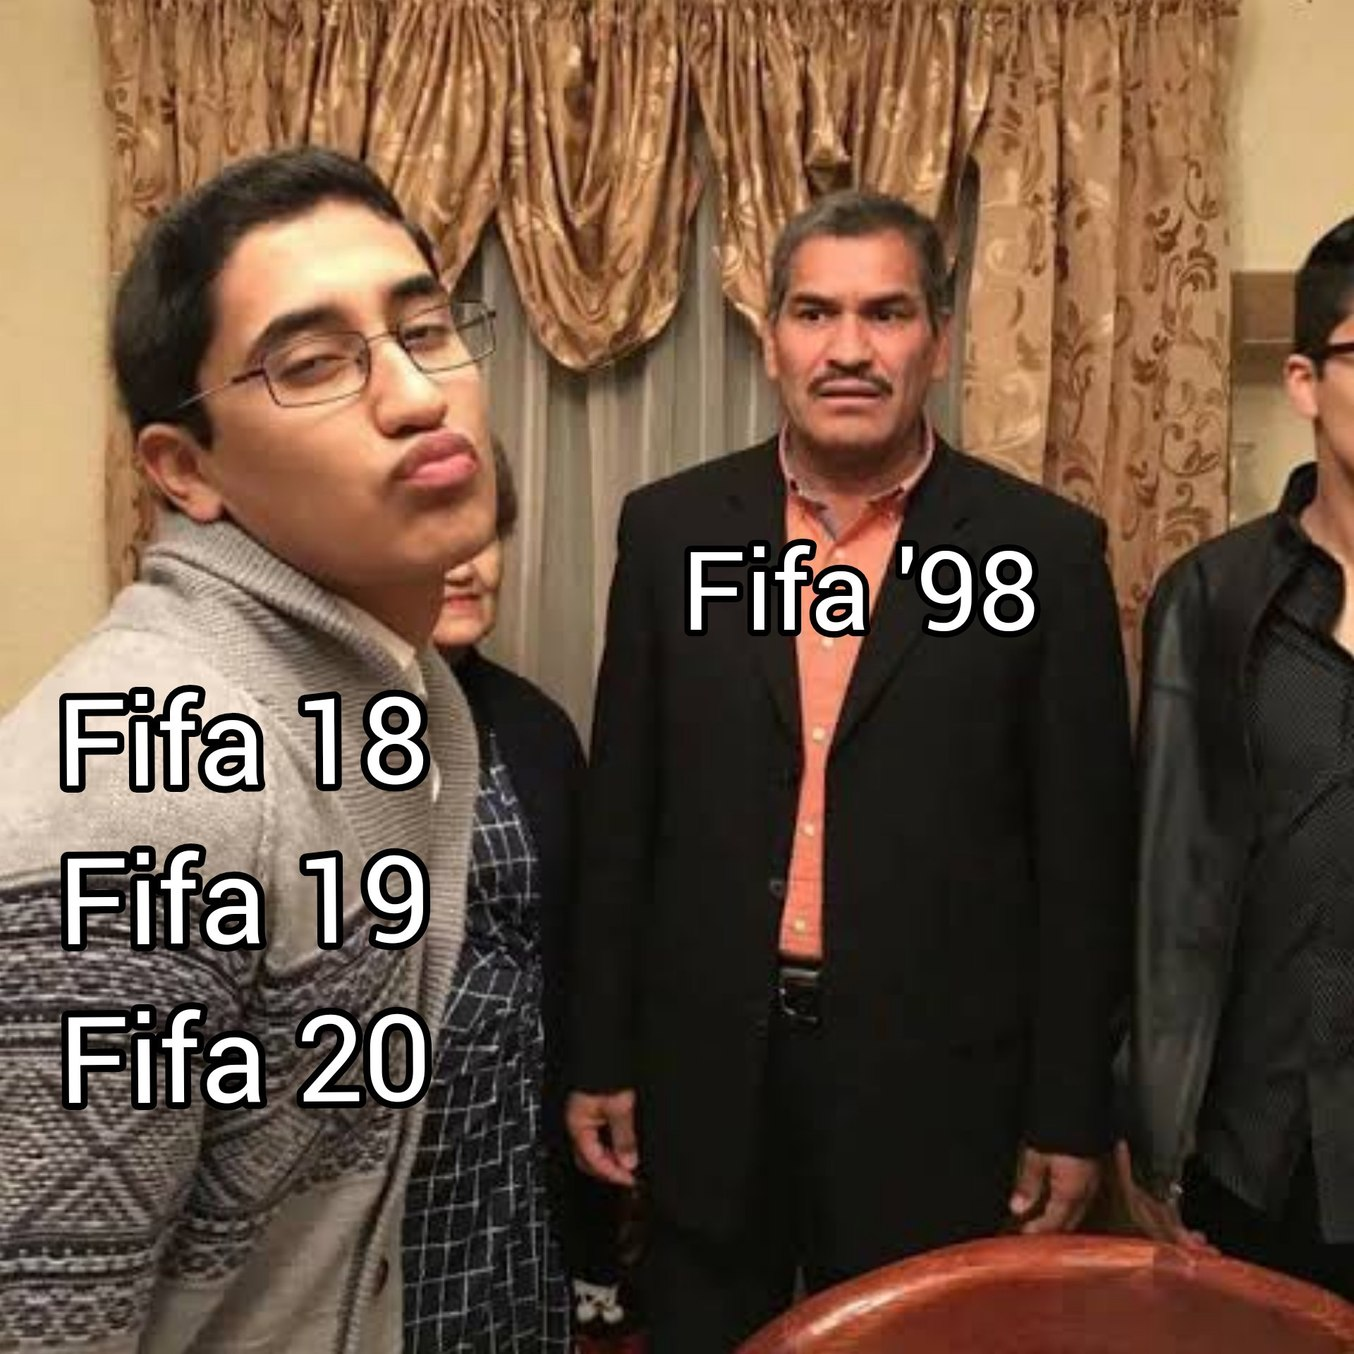 Anyone who bought fifa past fifa 17(first to use frostbite engine) is a chump - meme